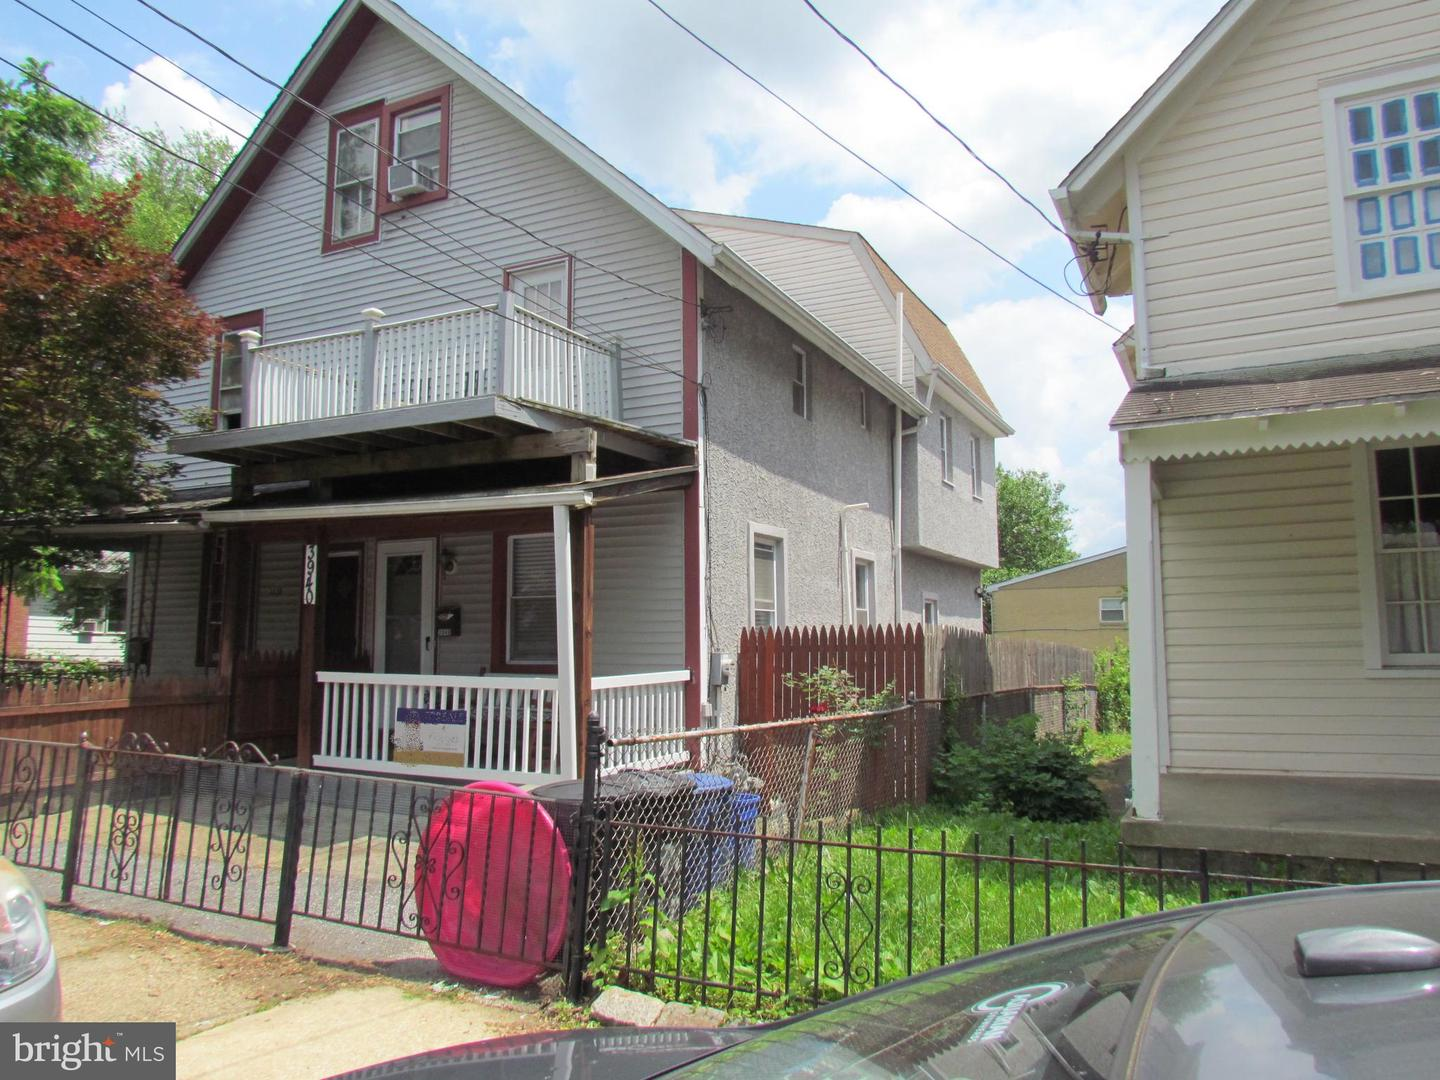 3940 Mary Street Drexel Hill, PA 19026